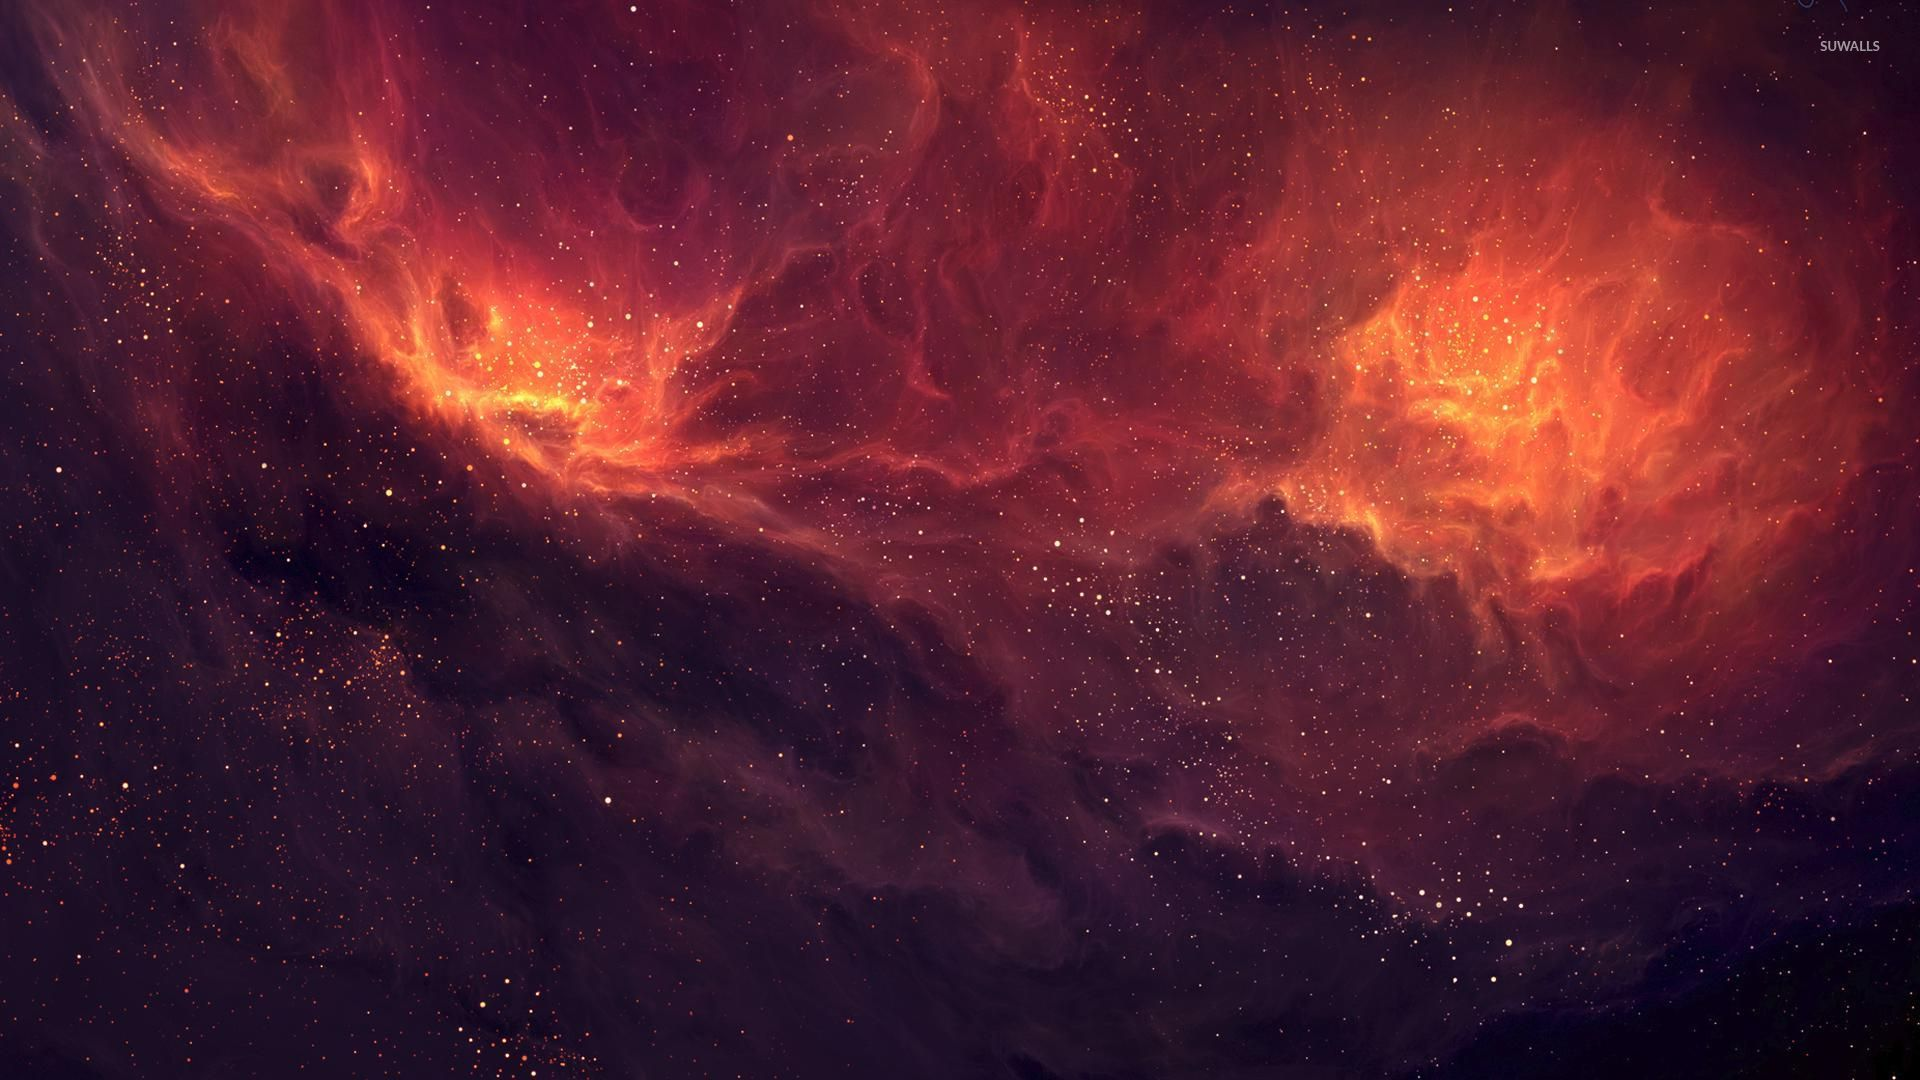 Firey nebula wallpaper space wallpapers 26344 for Universe wallpaper for walls